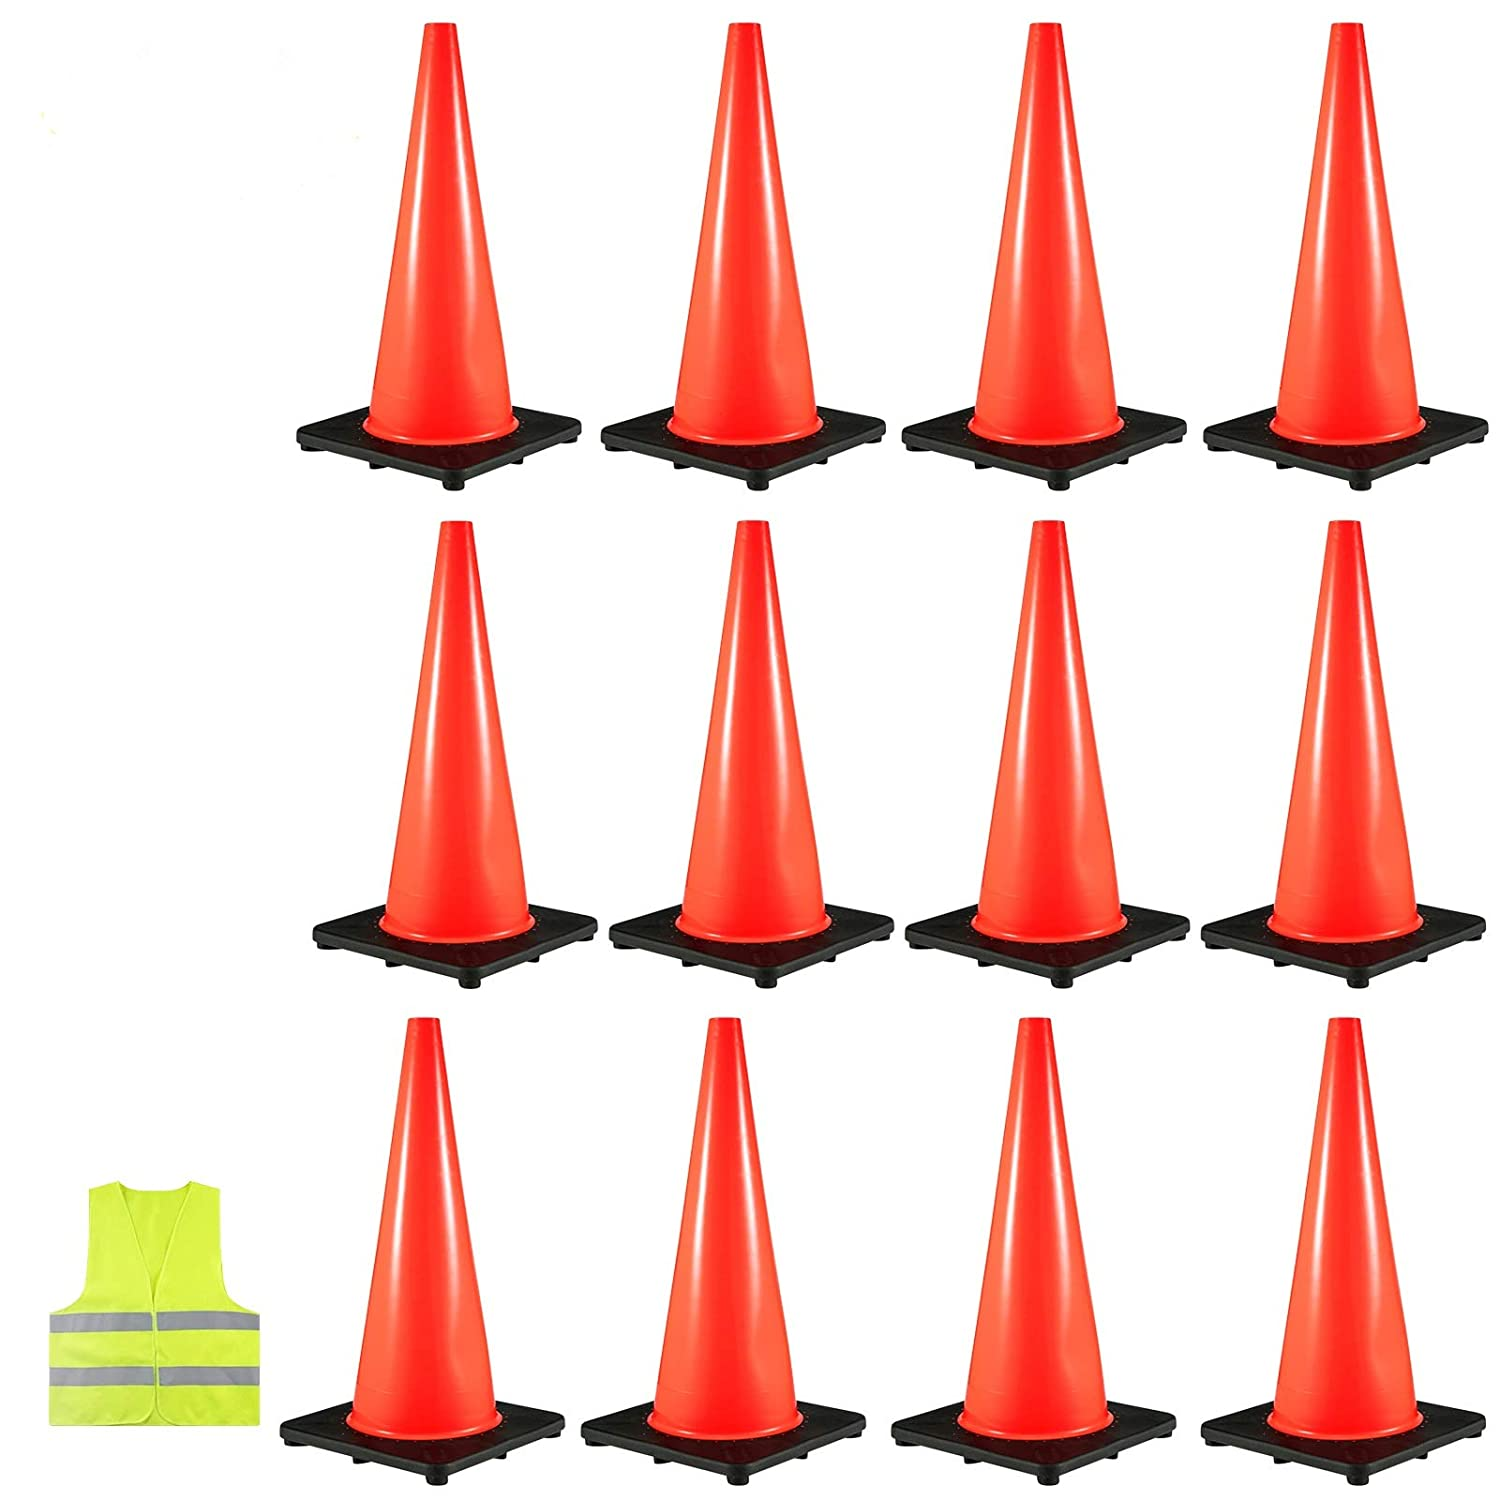 VEVOR 12PCS Traffic Cones, 18